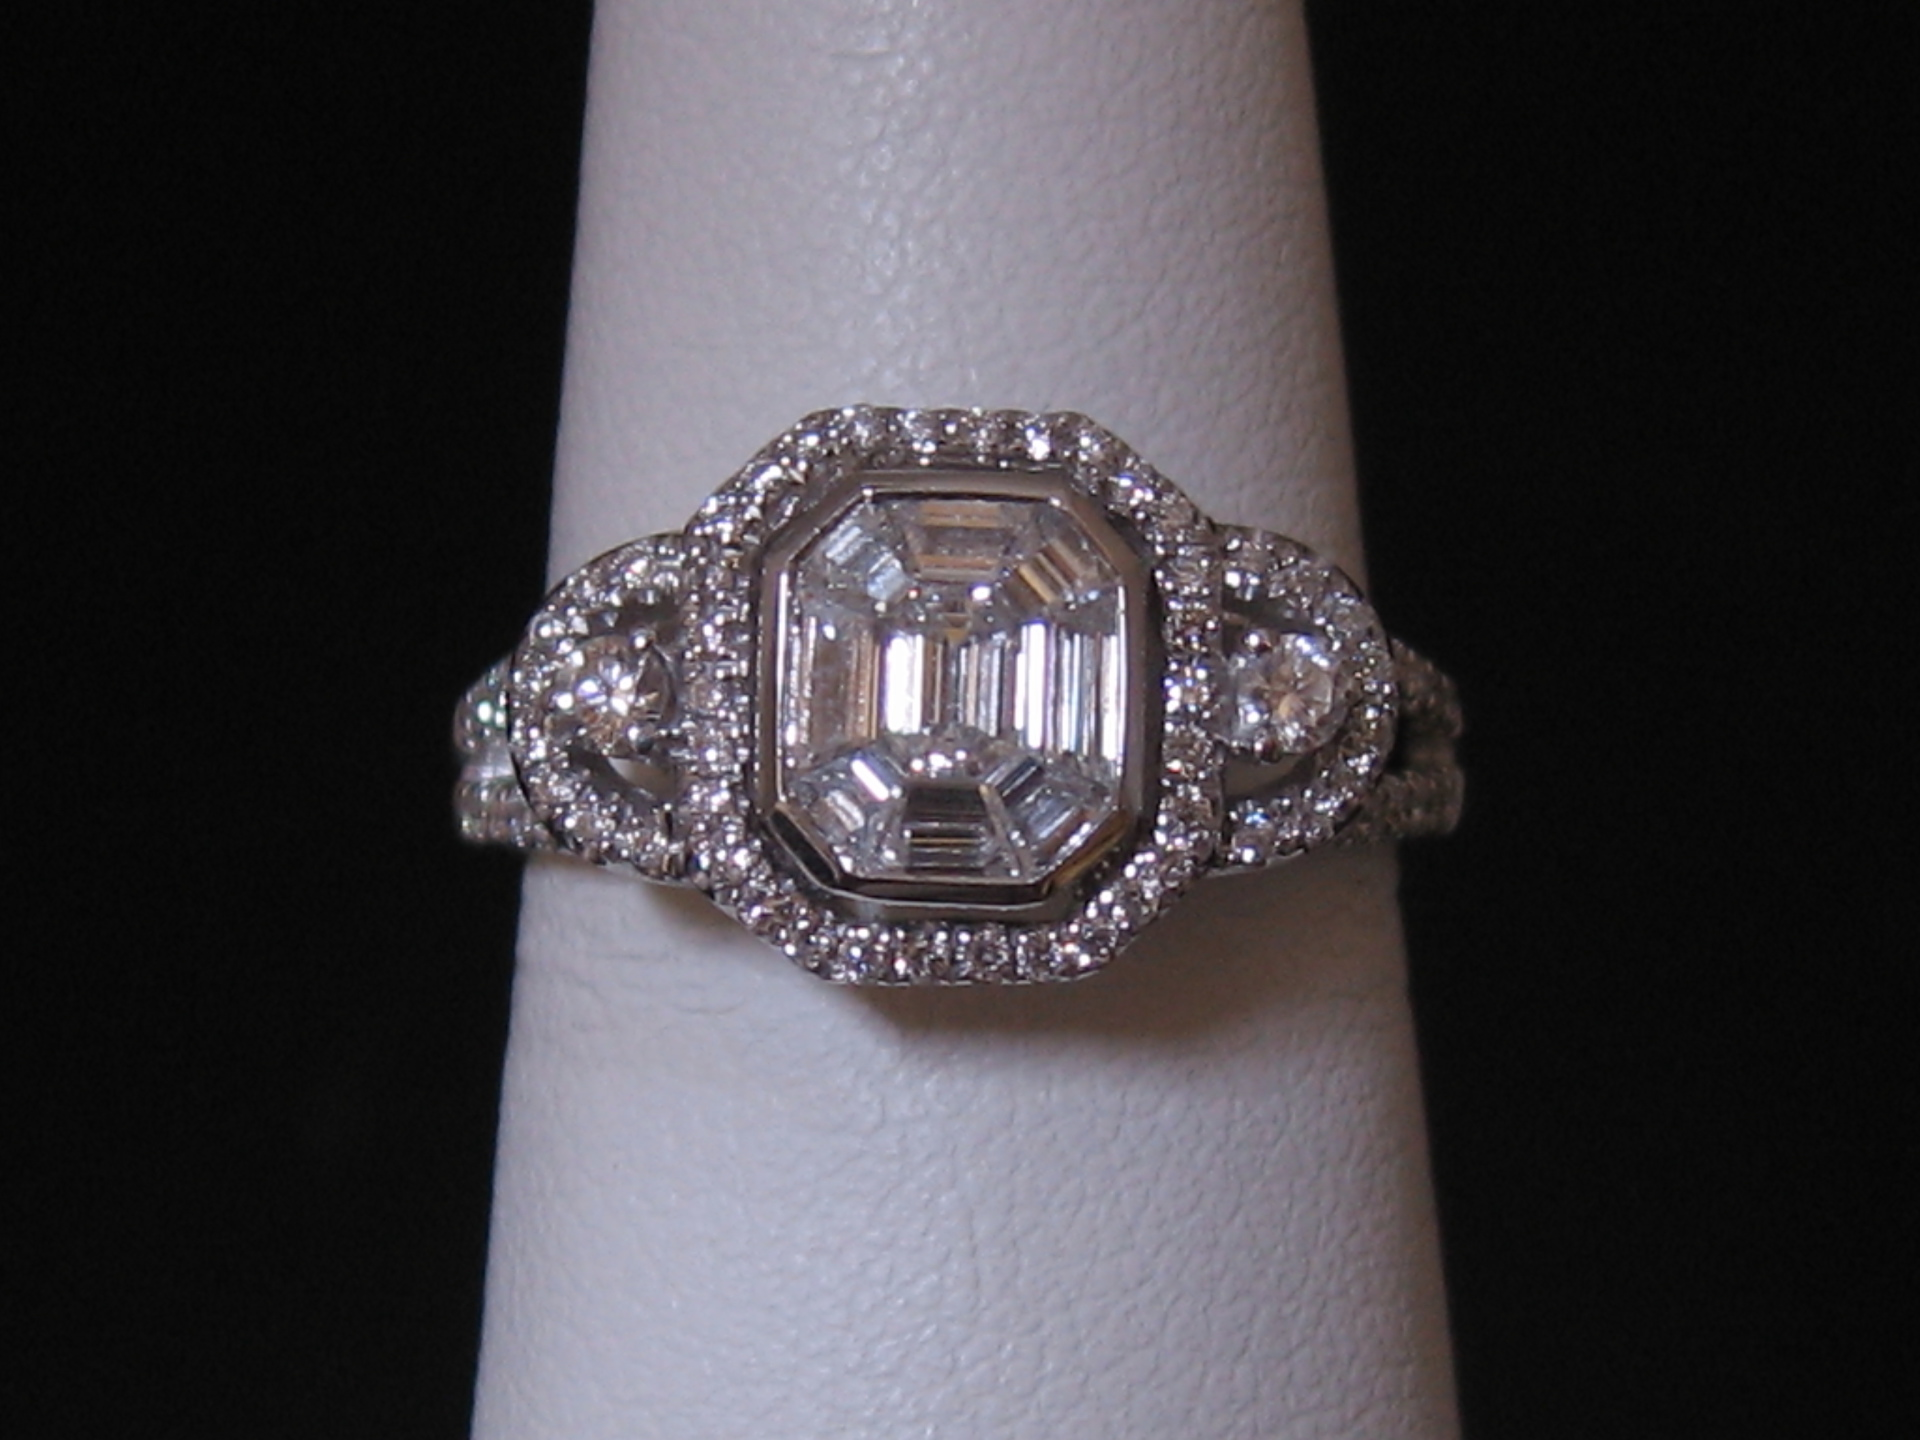 Rings, engagement, platinum, gold, 14kt, 18kt